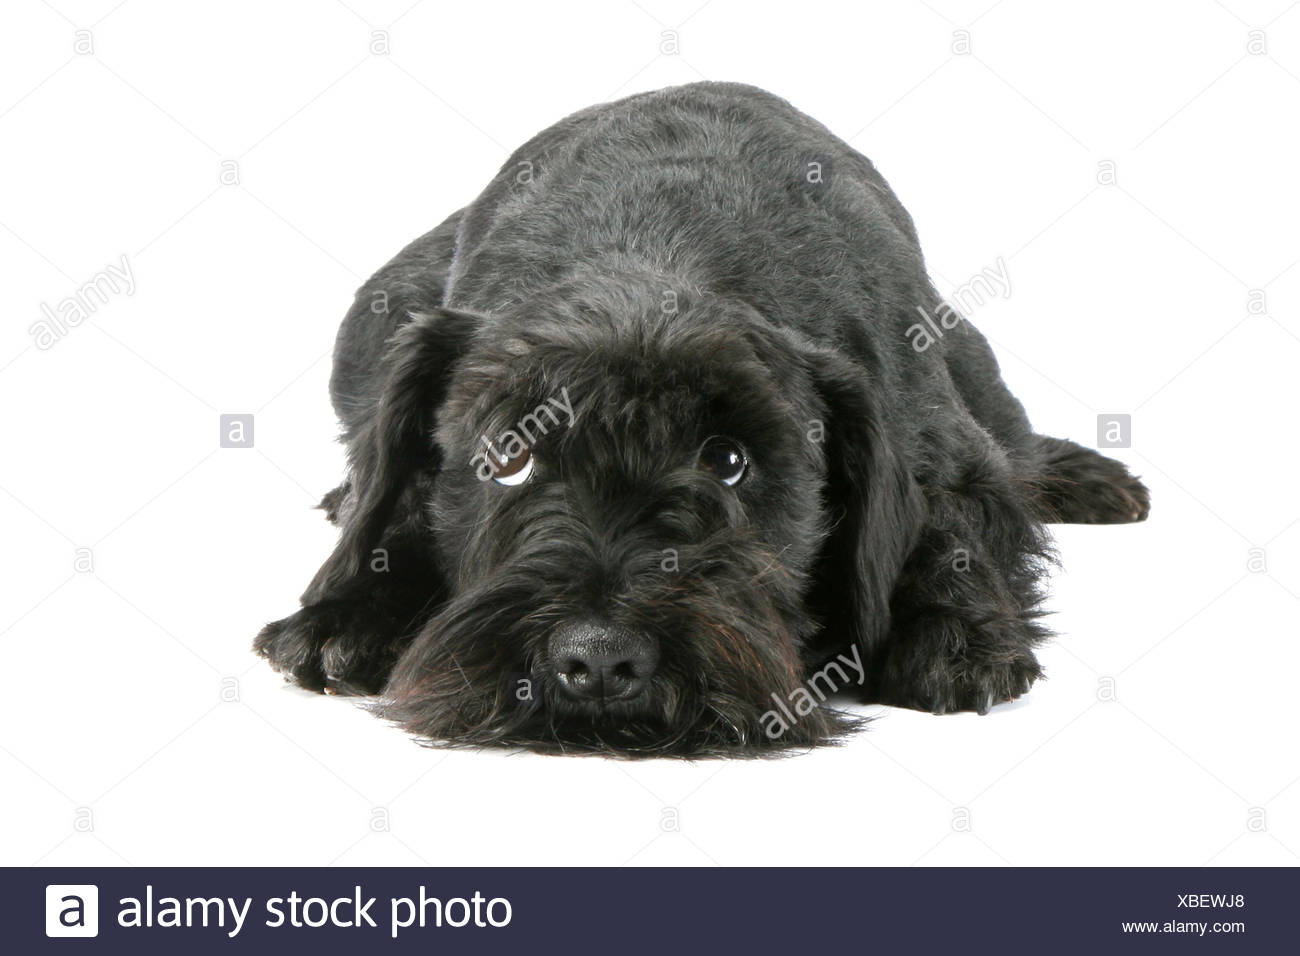 Schnauzer Standard - ment, cut out Photo Stock